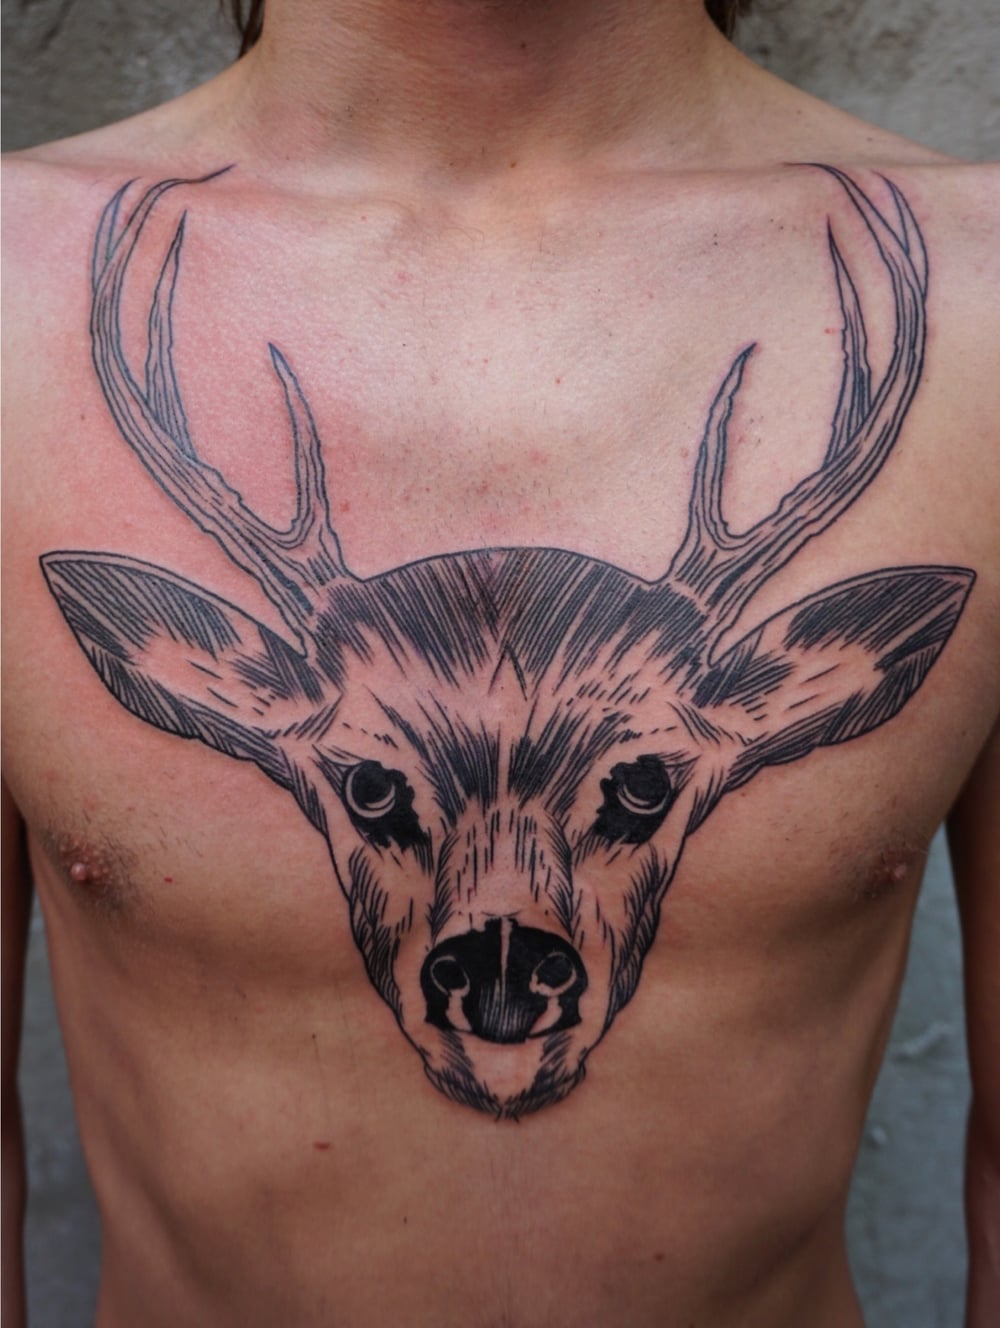 Chest tattoo for Daniel.